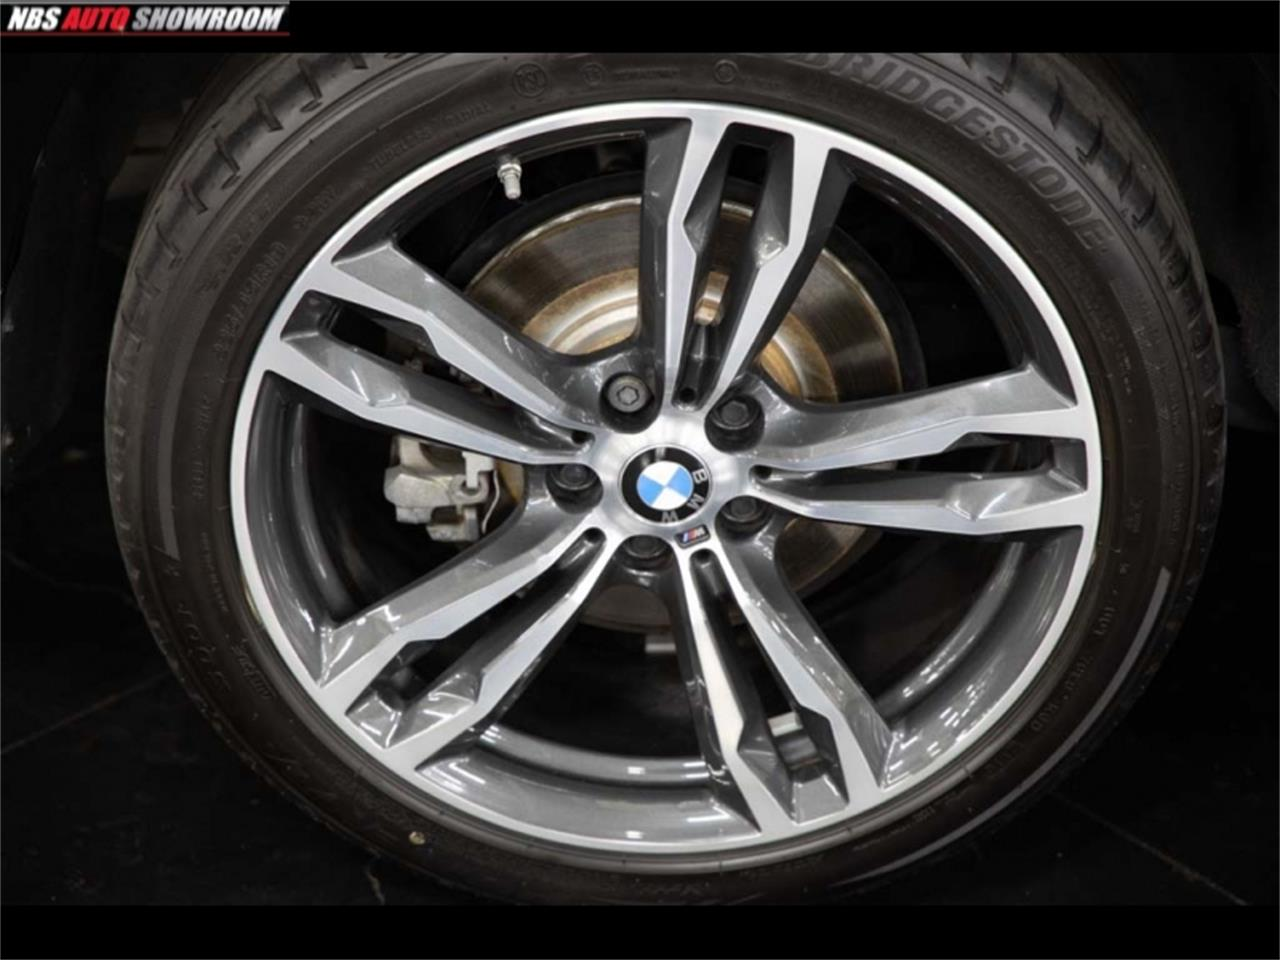 2017 BMW X1 (CC-1307505) for sale in Milpitas, California